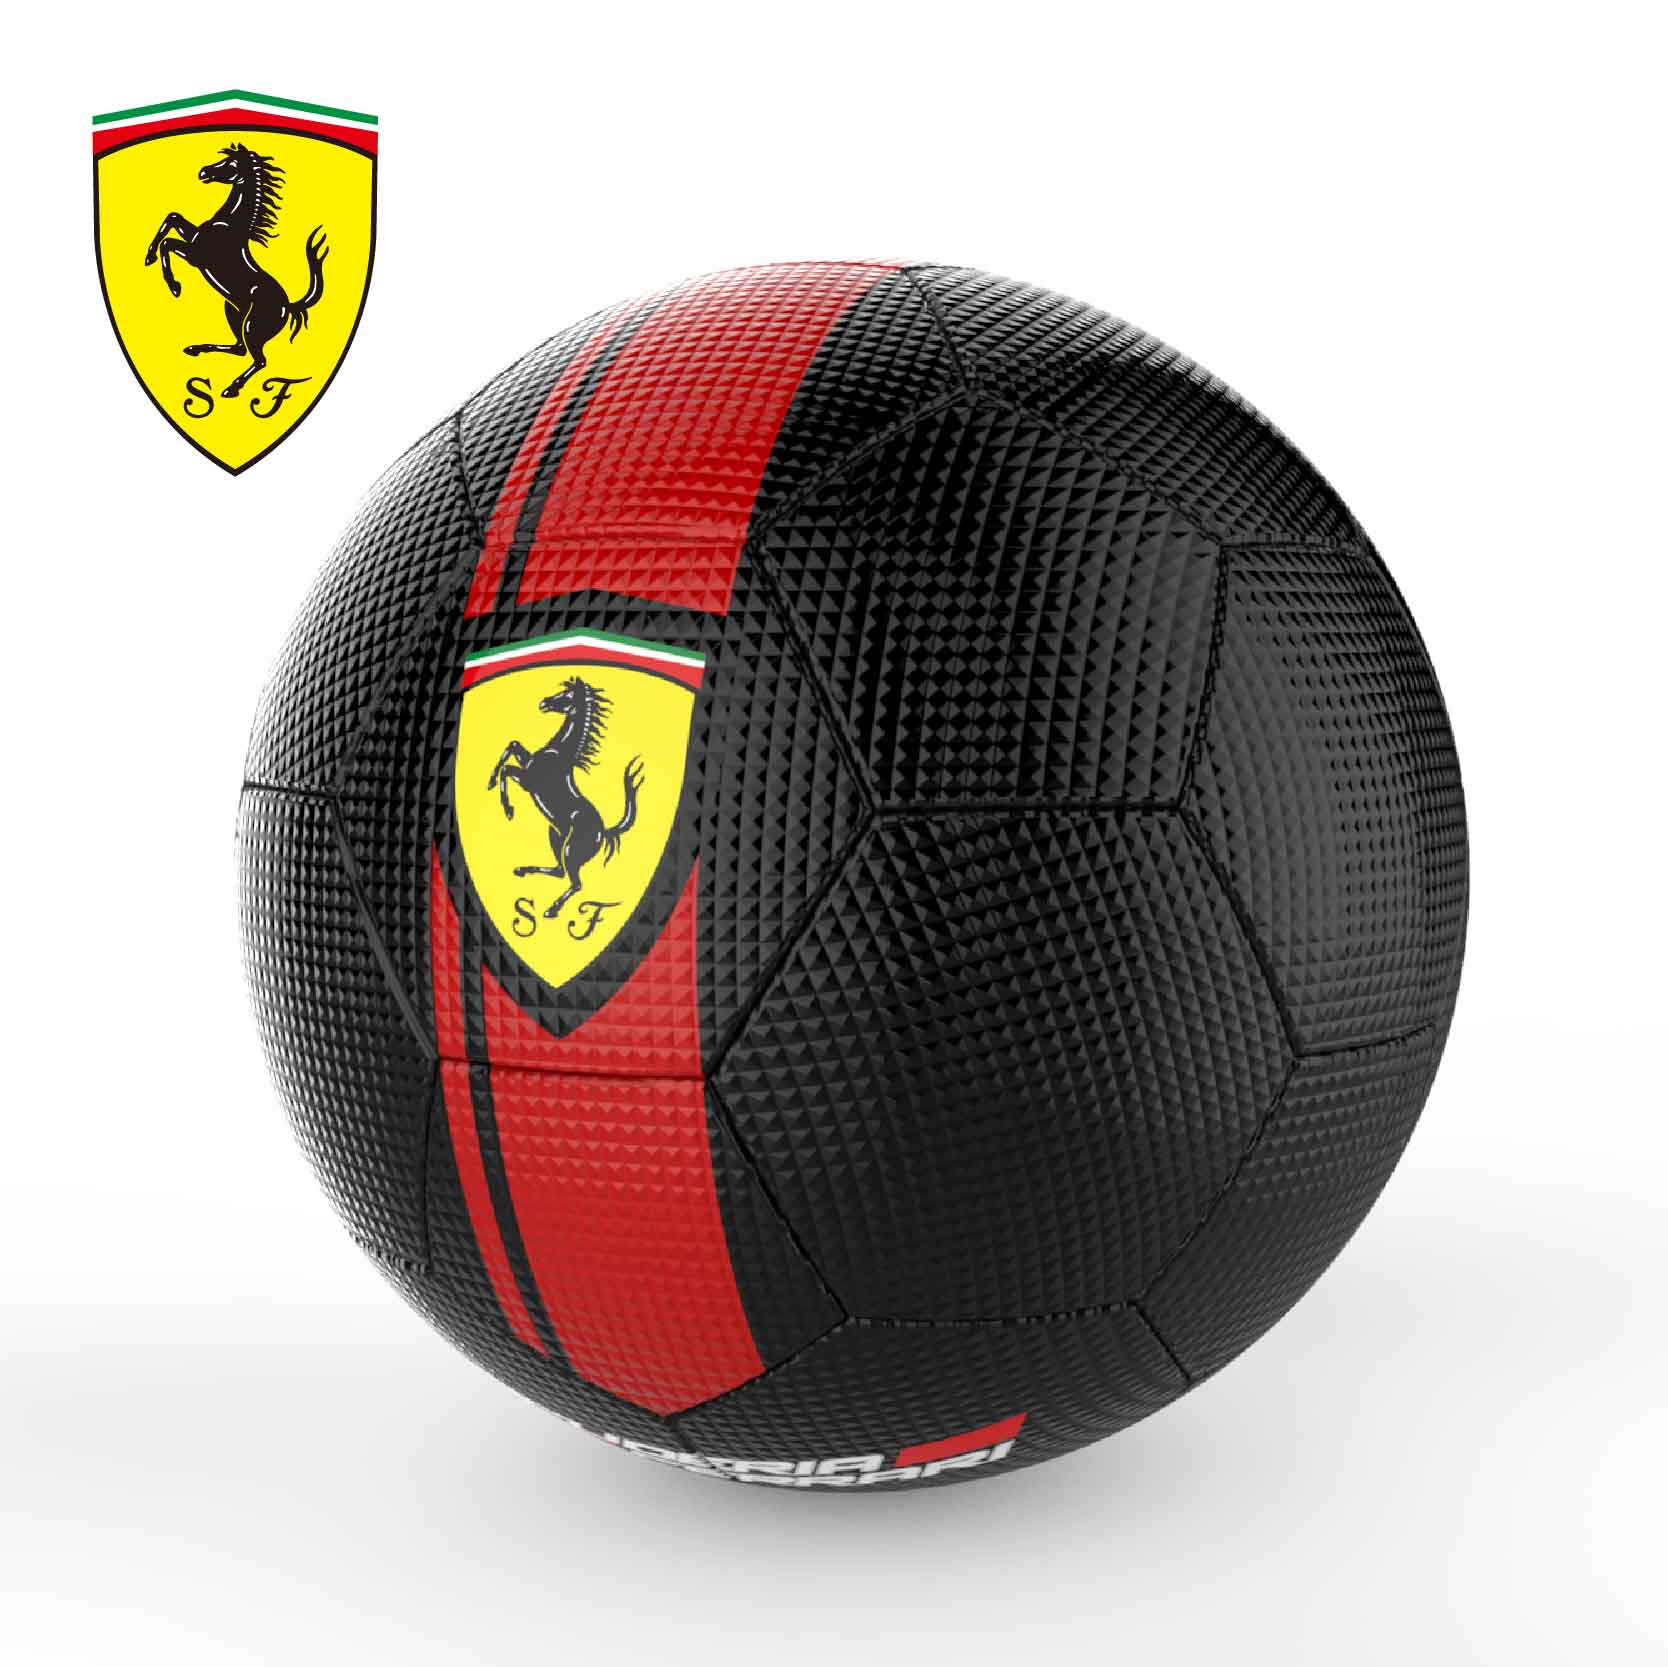 2020 new style high quality FERRARI Sewing machine PVC material soccer ball/football